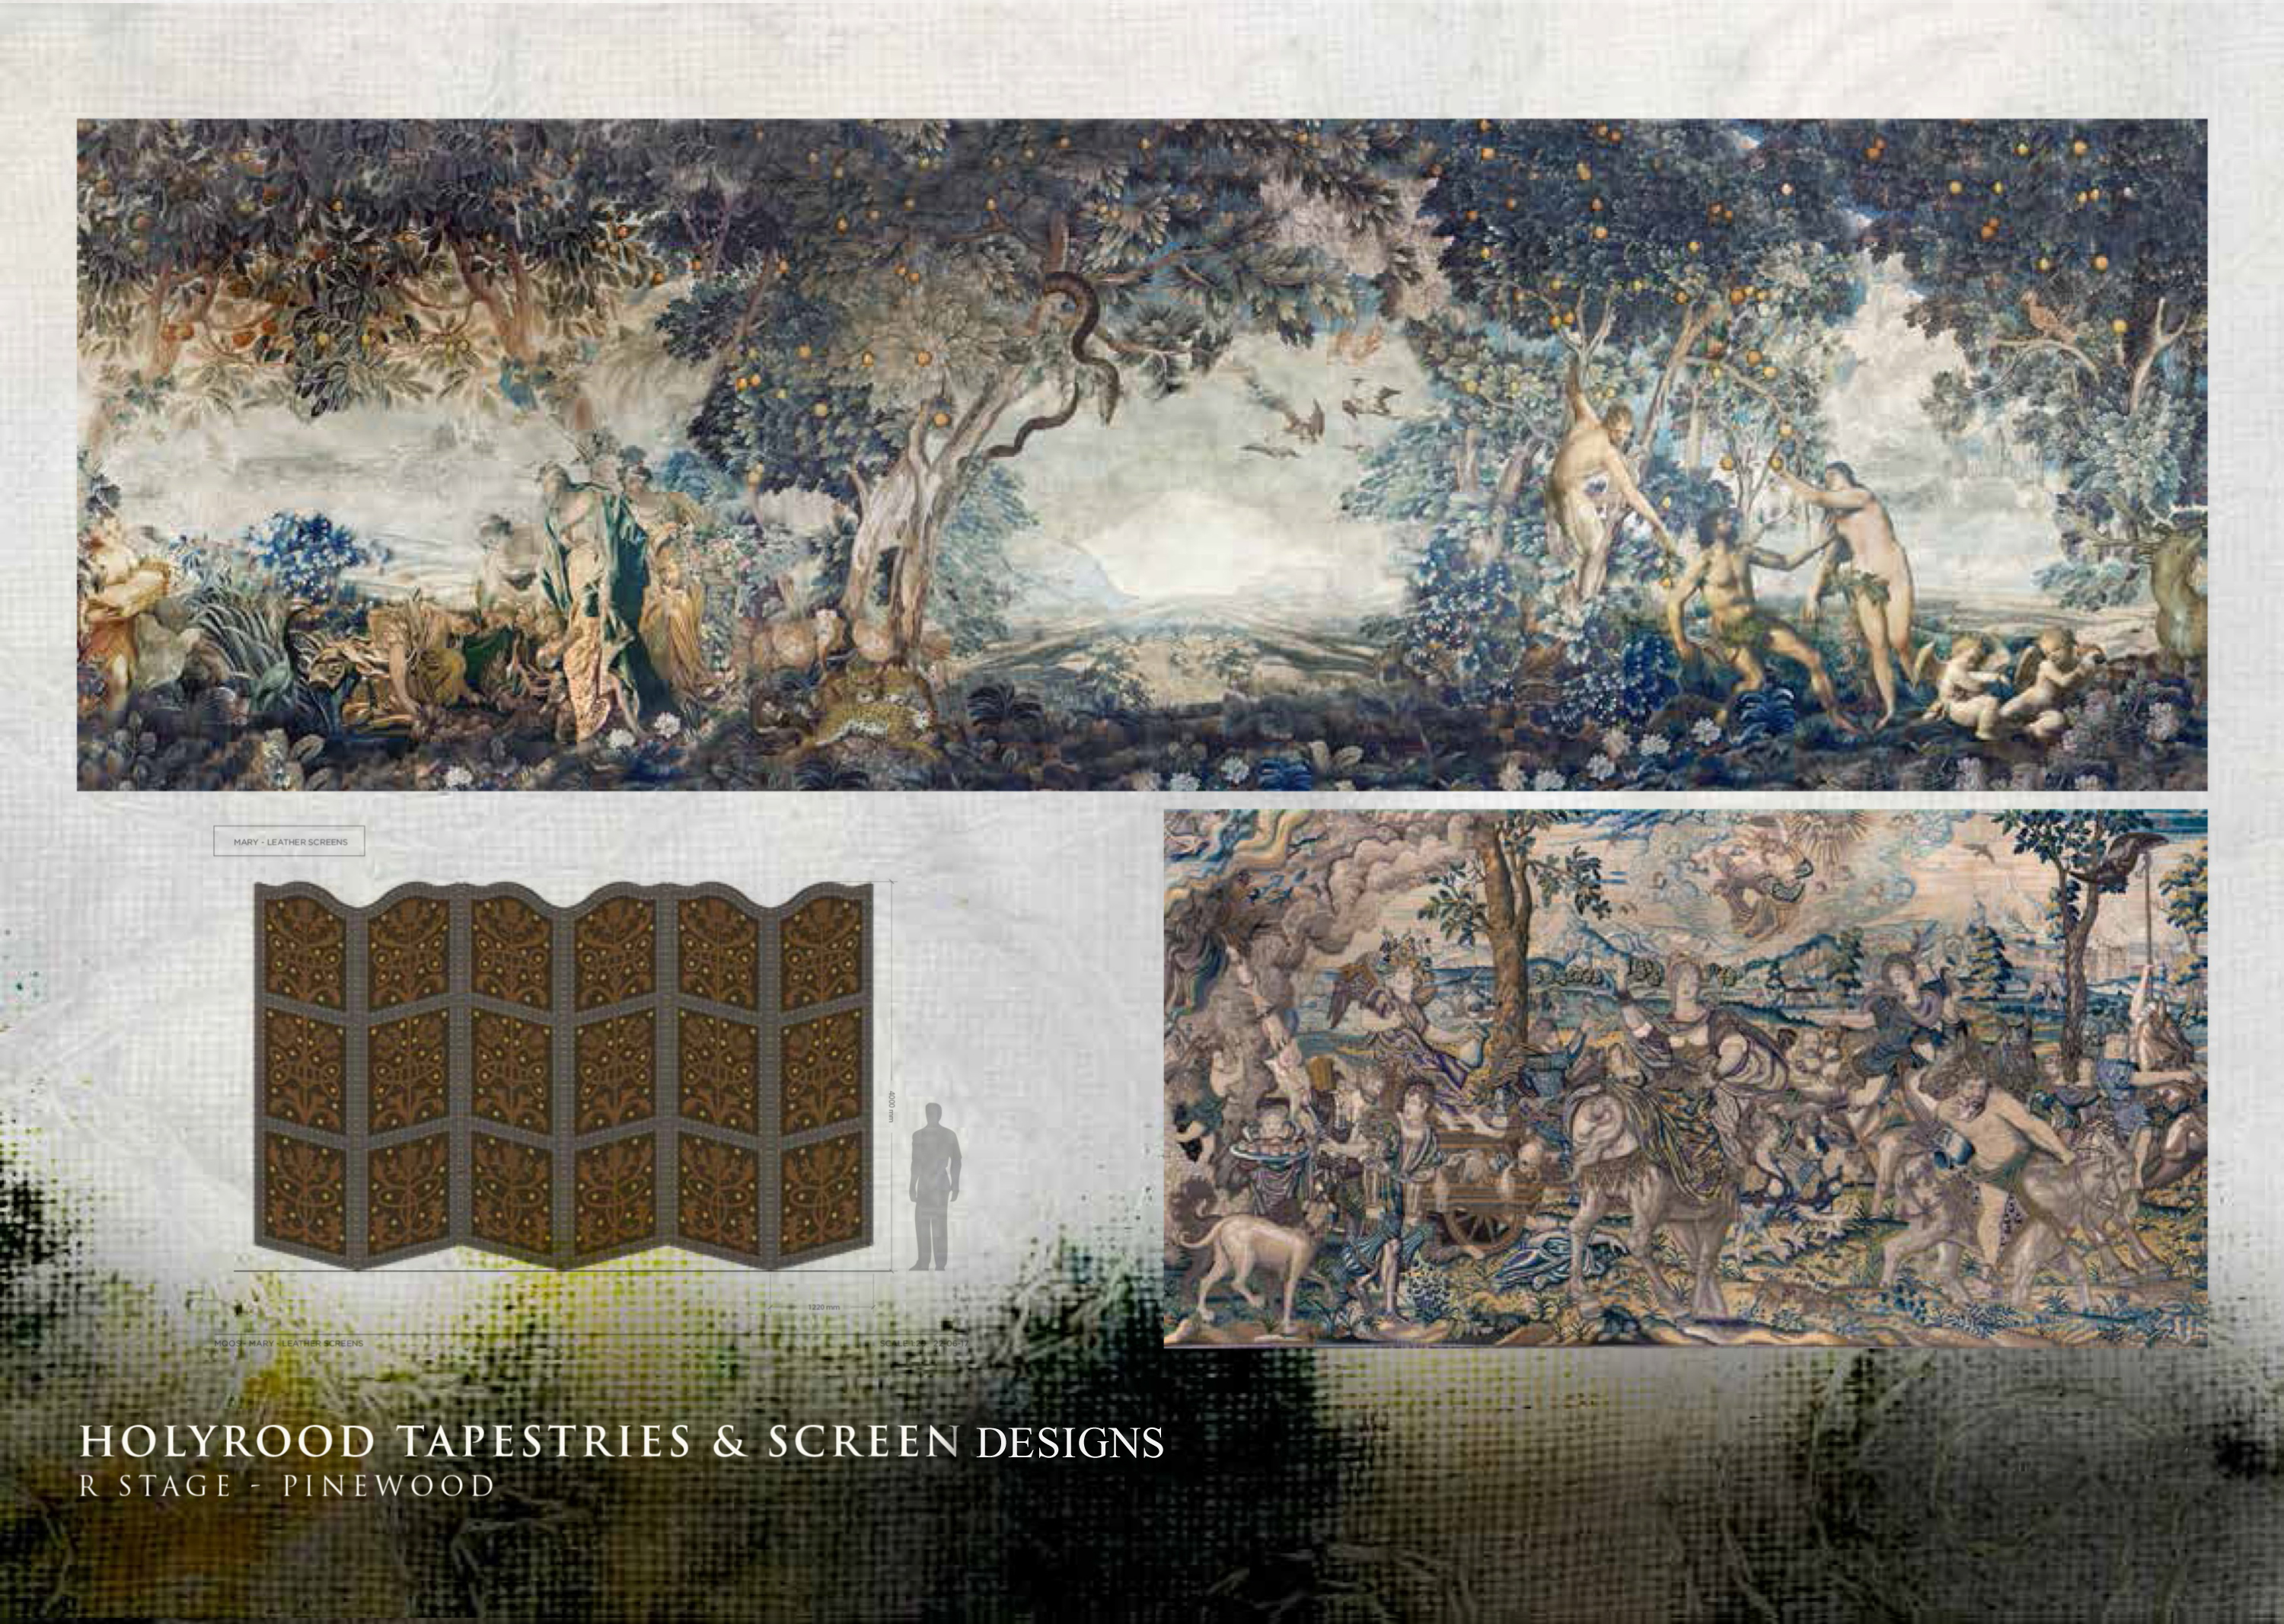 Original designs for the tapestries and screens at Holyrood Mary Queen of Scots film set